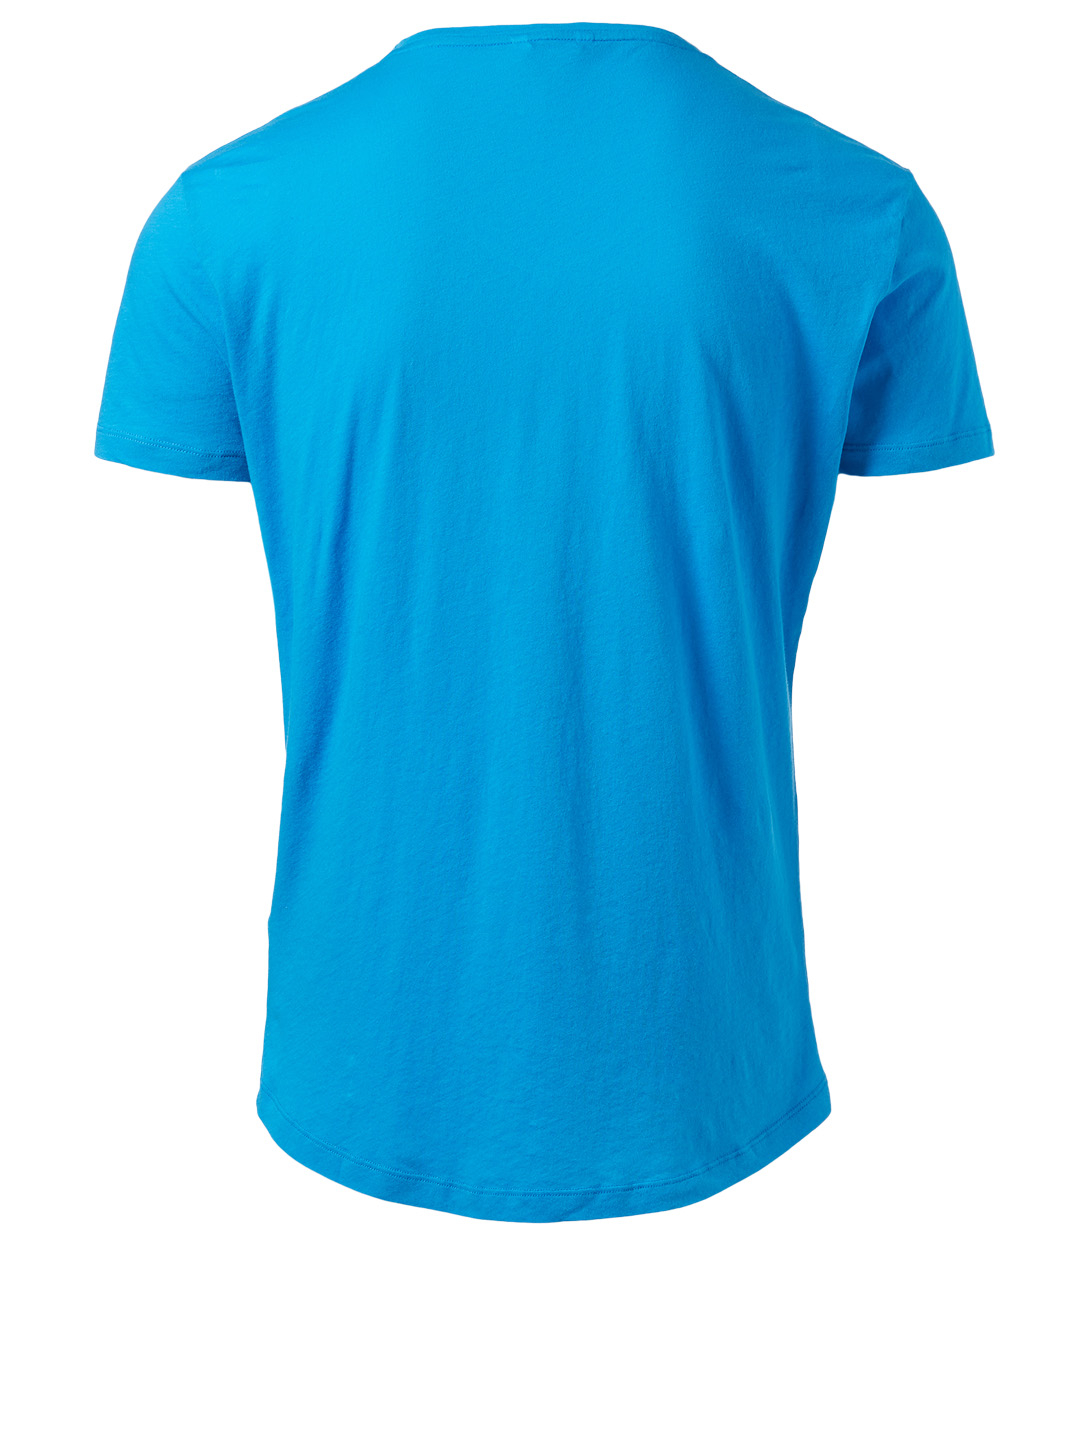 ORLEBAR BROWN OB-V Tailored Fit V-Neck T-Shirt Men's Blue